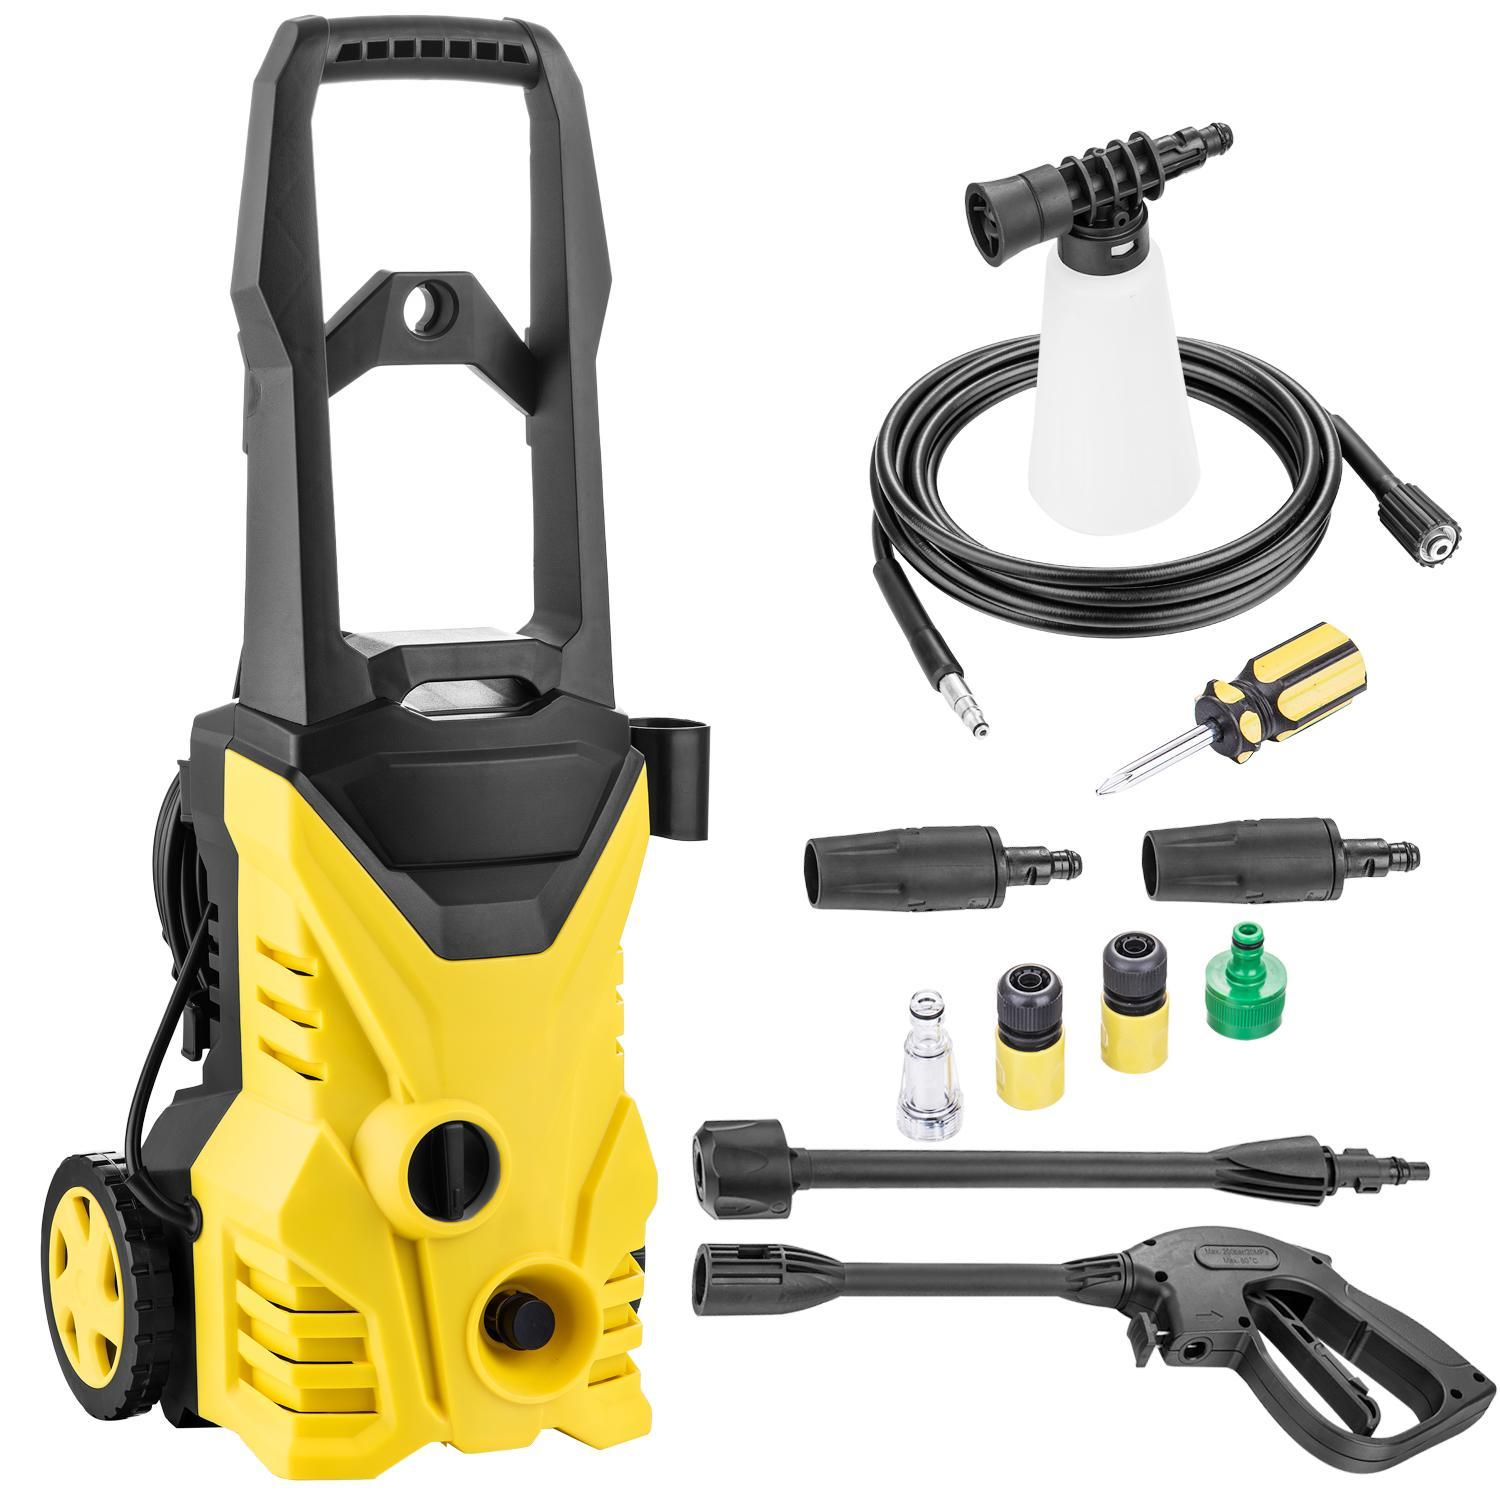 Electric Pressure Washer 1500 PSI 1.3GPM with Power Hose Nozzle Gun and Soap Dispenser,(2) Spray Nozzle Adapter ROJE